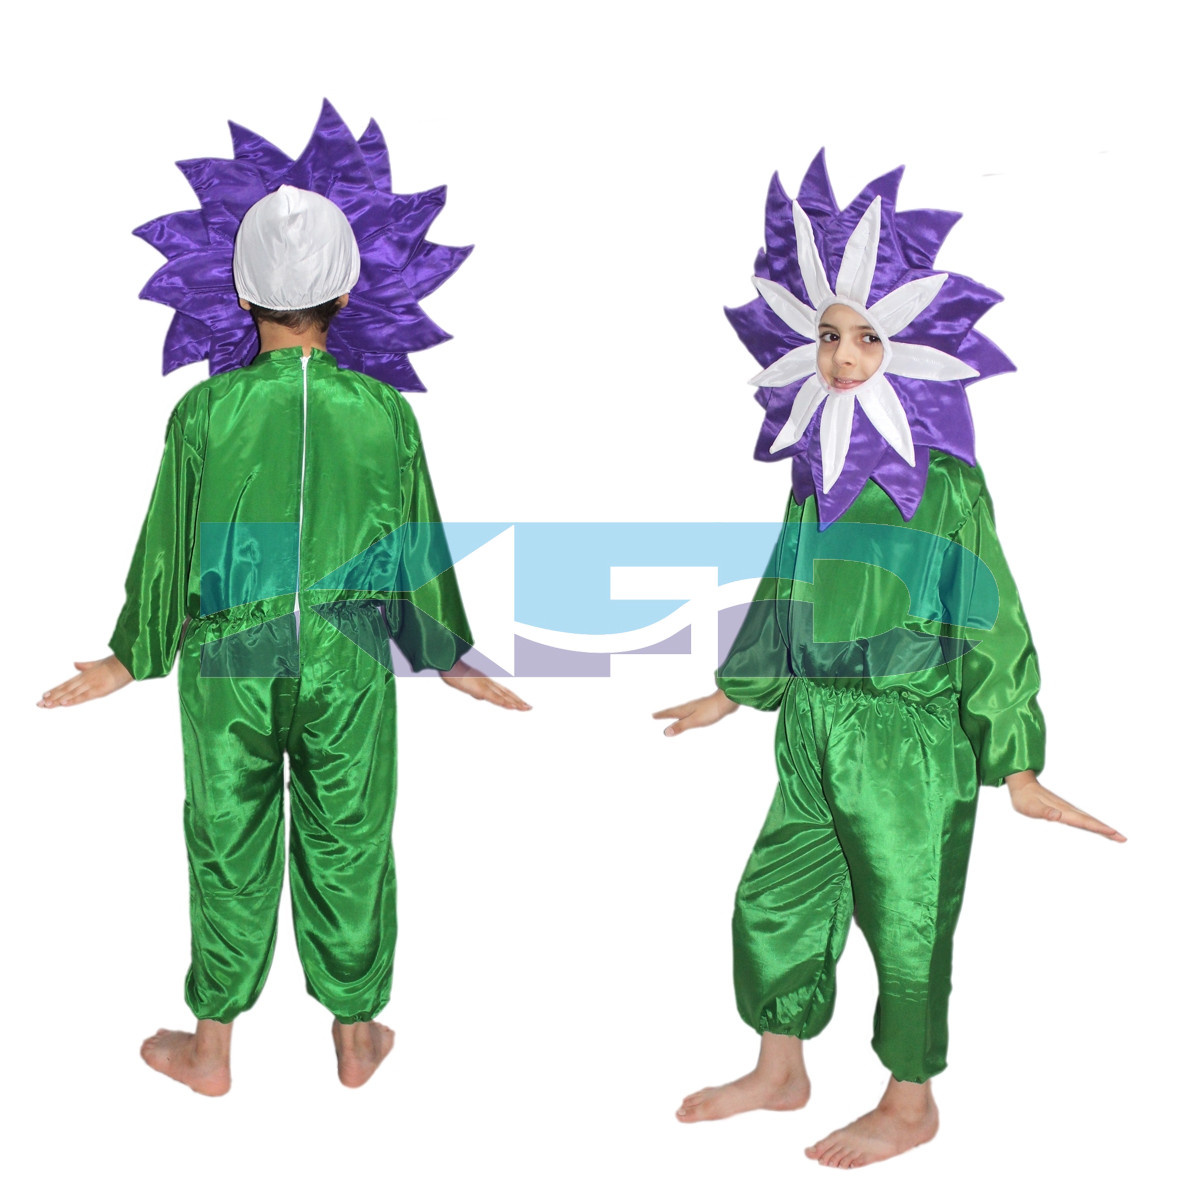 Purple flower Costume ,Nature Costume for School Annual function/Theme Party/Stage Shows/Competition/Birthday Party Dress